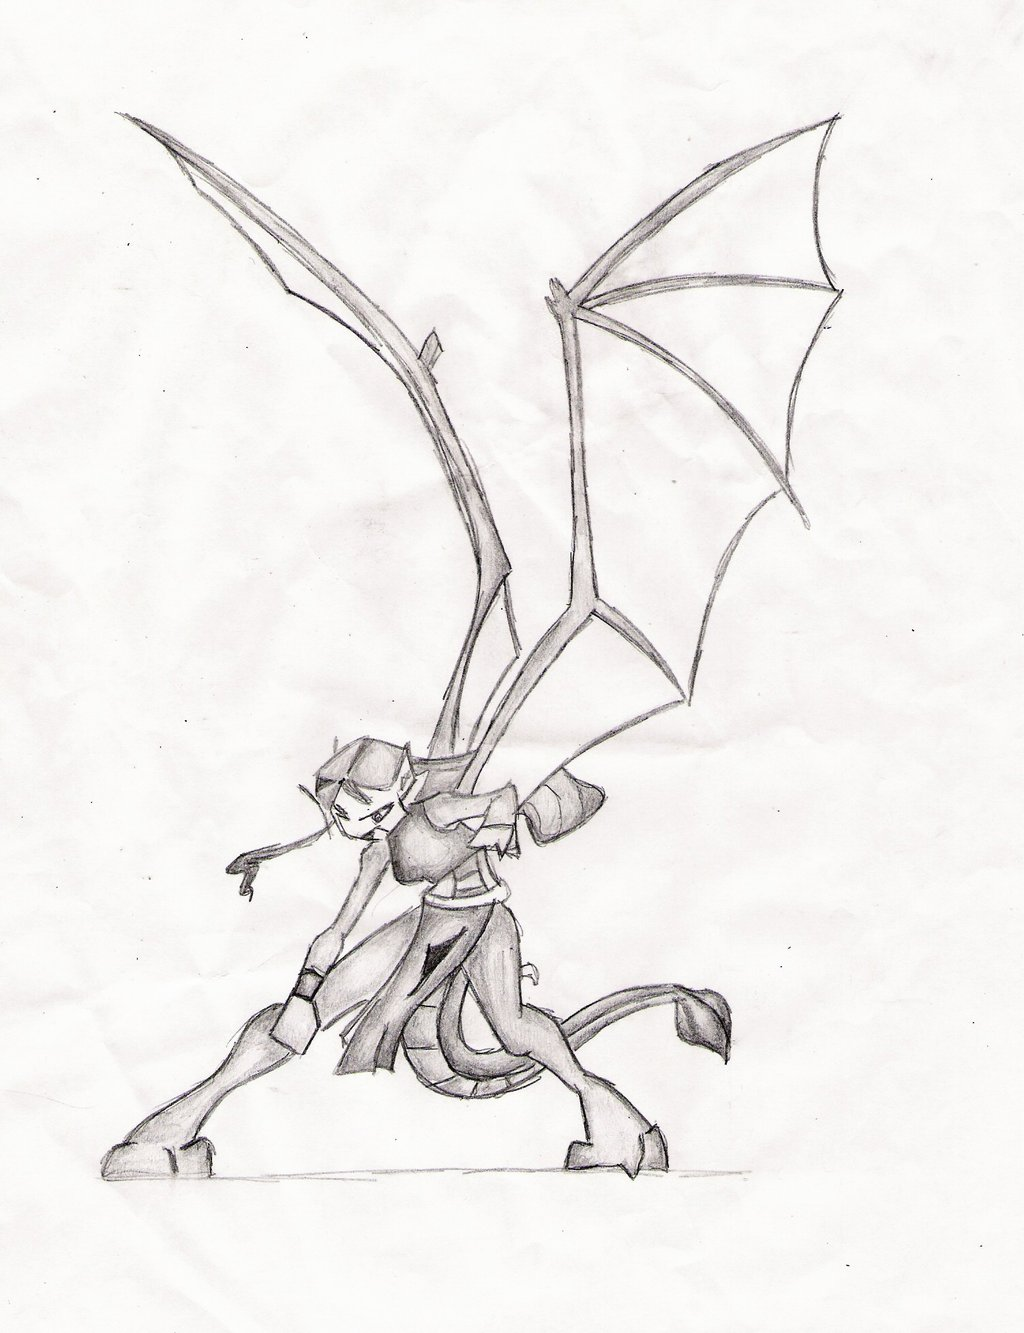 1024x1333 Drawn Demon Body Free Collection Download And Share Drawn Demon Body